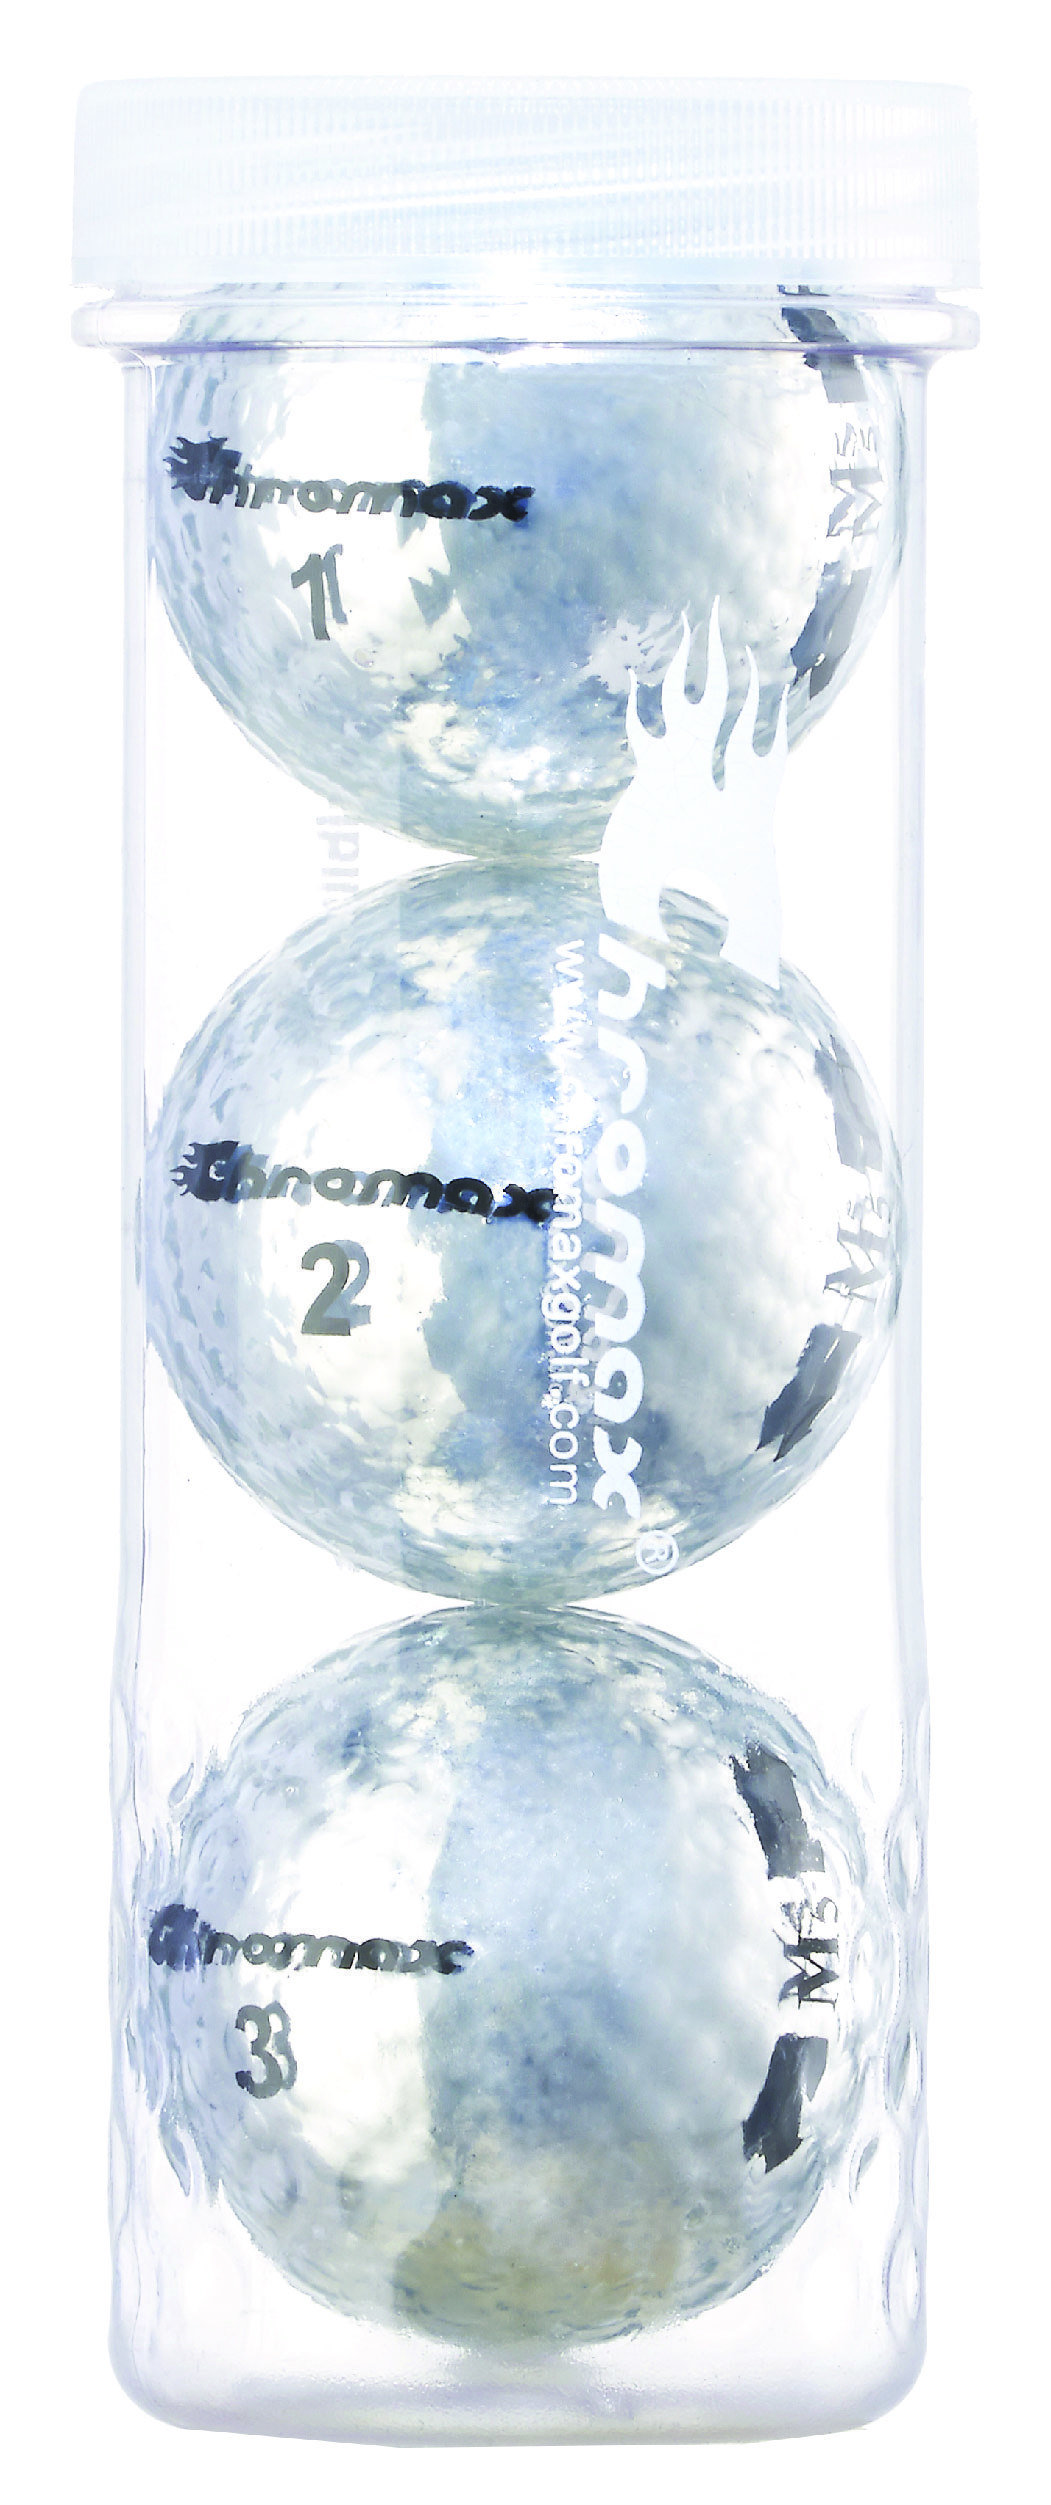 Chromax® Colored Silver Golf Balls - Metallic M5 3 Ball Tube CM53SIL